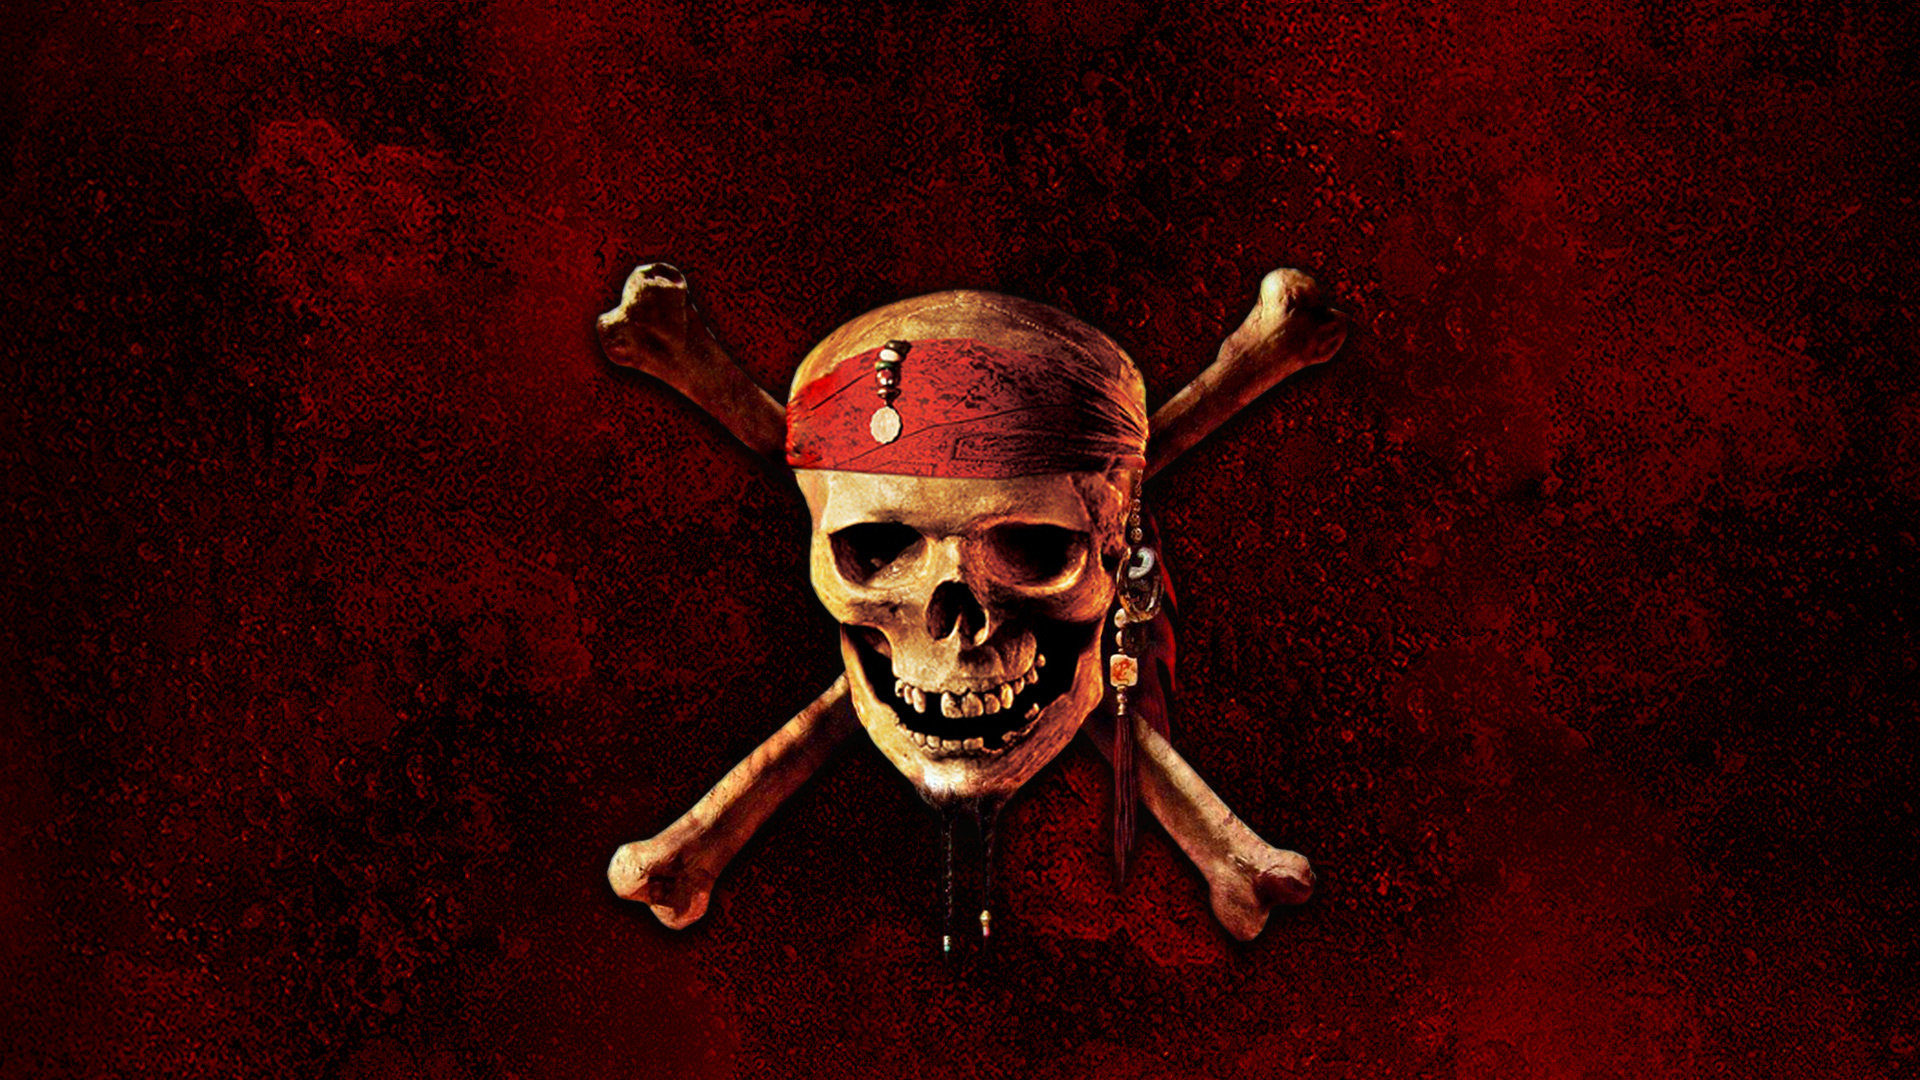 Pirates of the caribbean at world 39 s end wallpapers 1920x1080 full hd 1080p desktop backgrounds - Pirates of the caribbean images hd ...